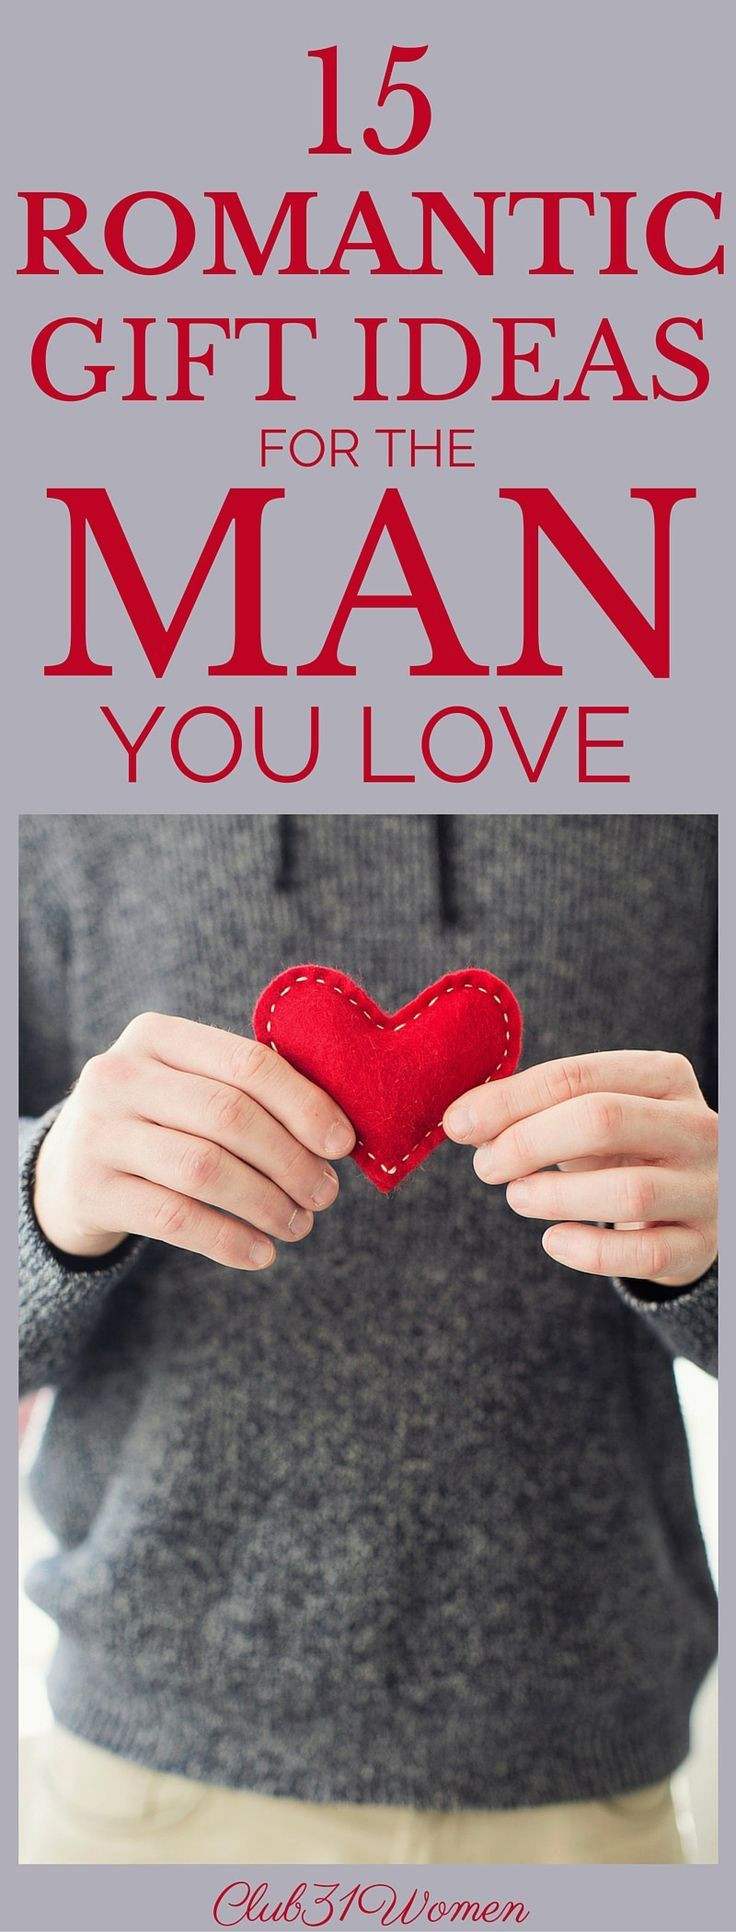 Best ideas about Romantic Gift Ideas For Him . Save or Pin 15 Surprisingly Romantic Gift Ideas for The Man You Love Now.